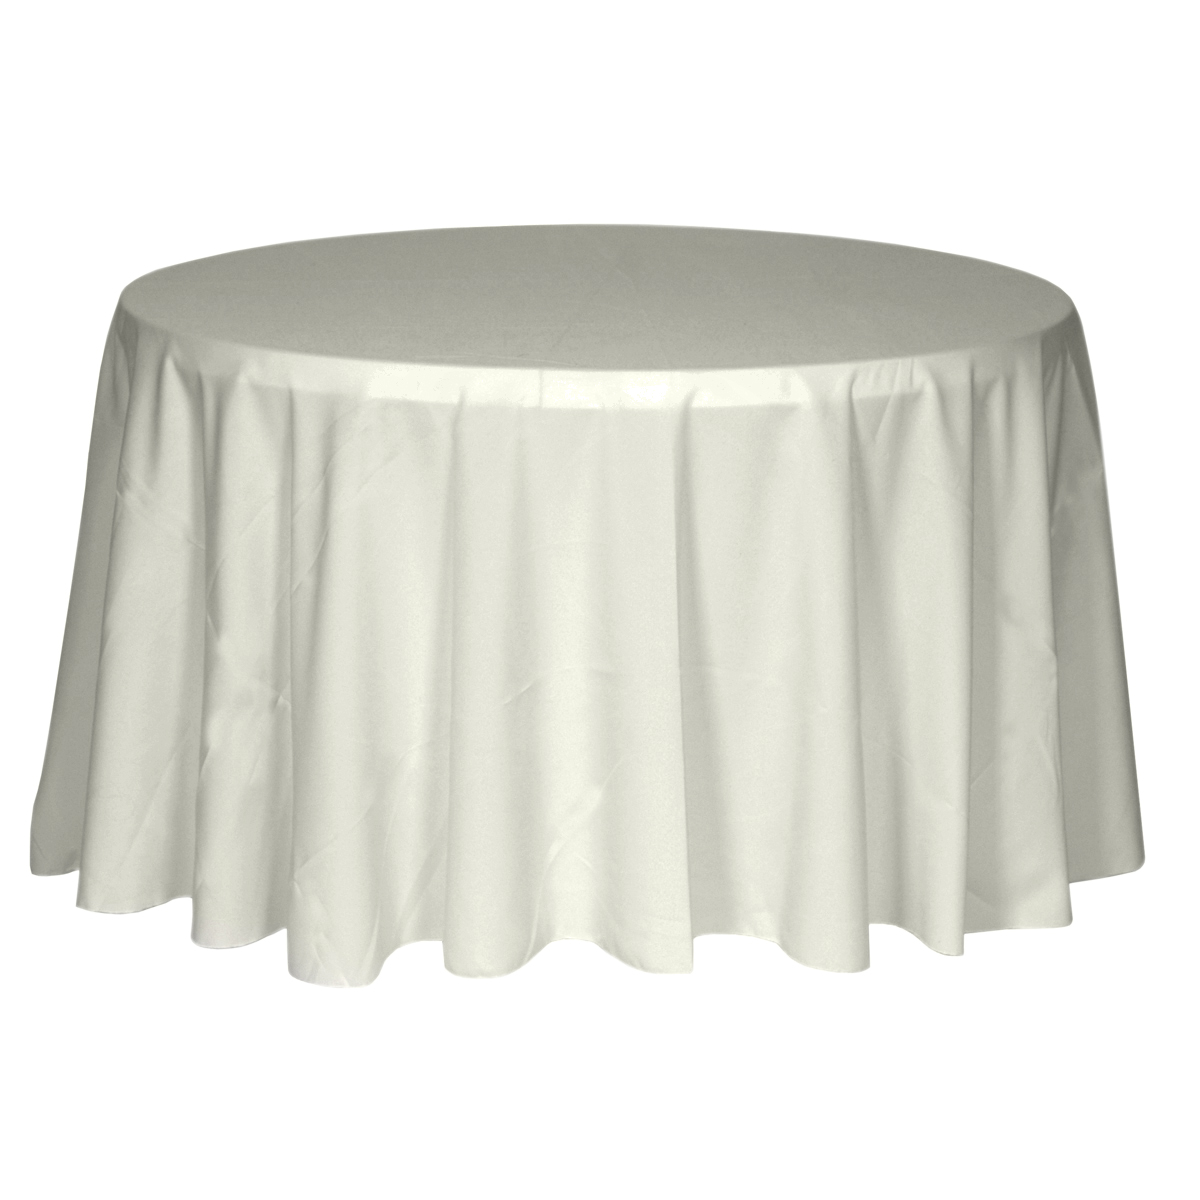 awesome small round table cover set and tile wooden tables topper office dining toppers cloth top outdoor tablecloths tablecloth lace linens side chairs white garden glass for